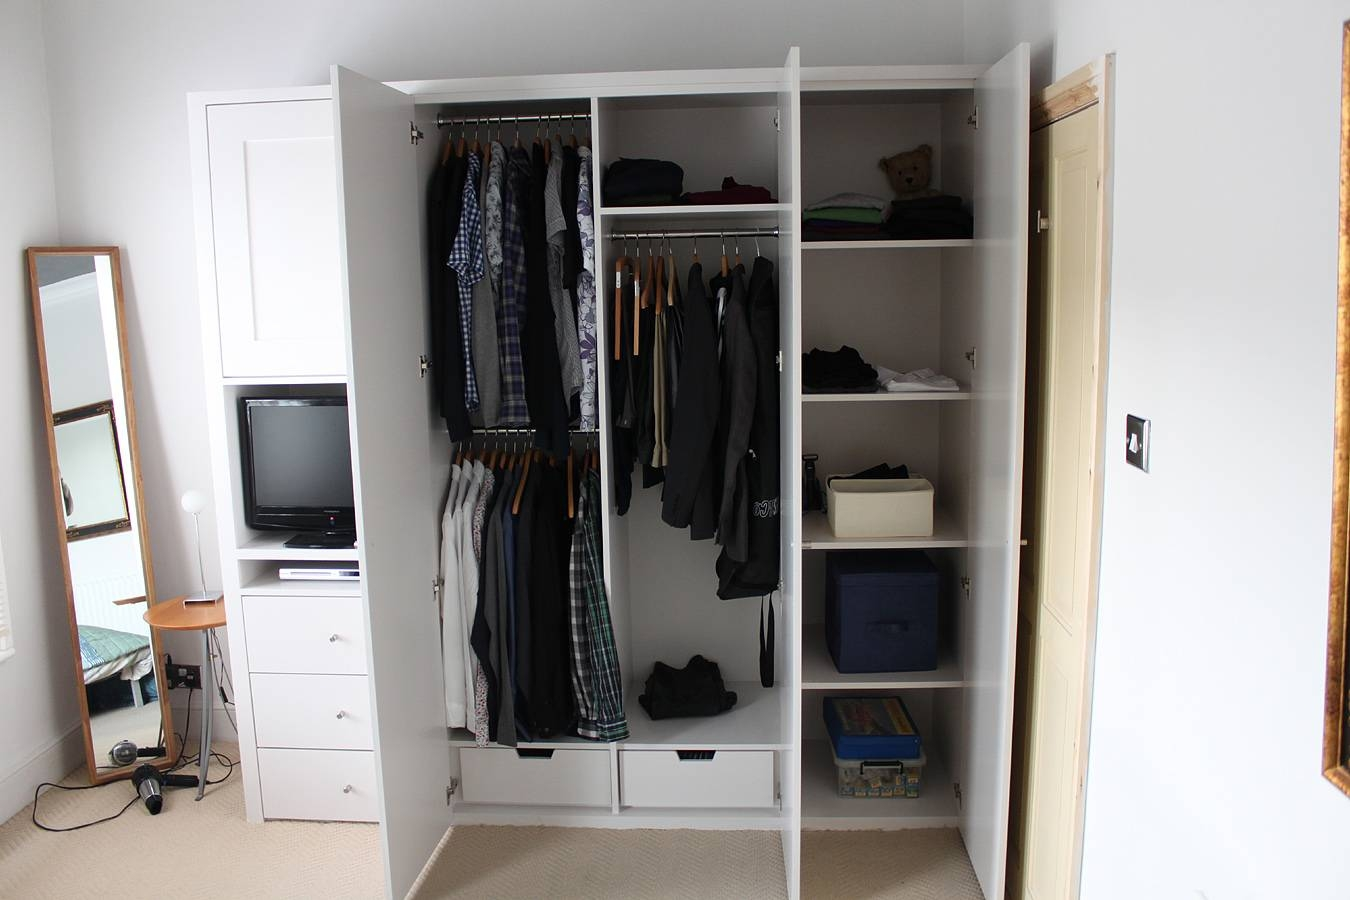 Armoire Designe » Armoire With Drawers And Shelves - Dernier inside Wardrobes With Drawers and Shelves (Image 4 of 30)